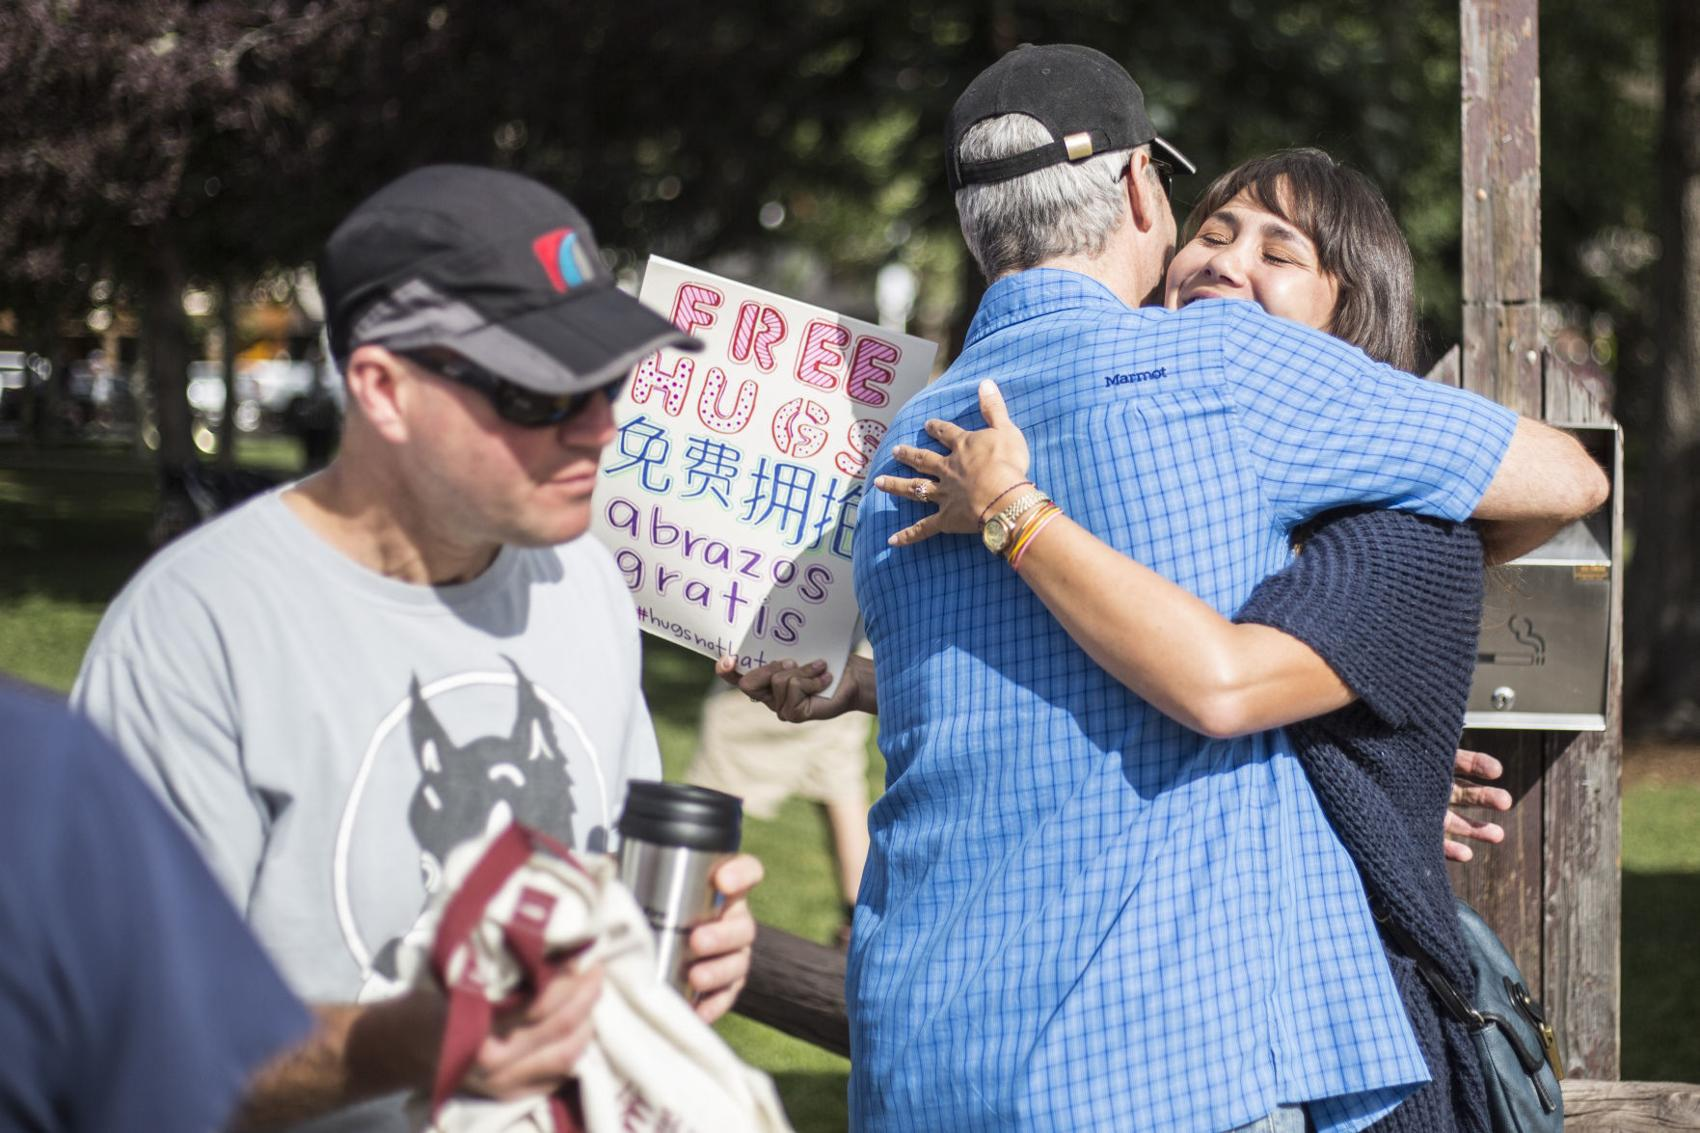 Jackson Hole residents respond to El Paso shooting with healing arts